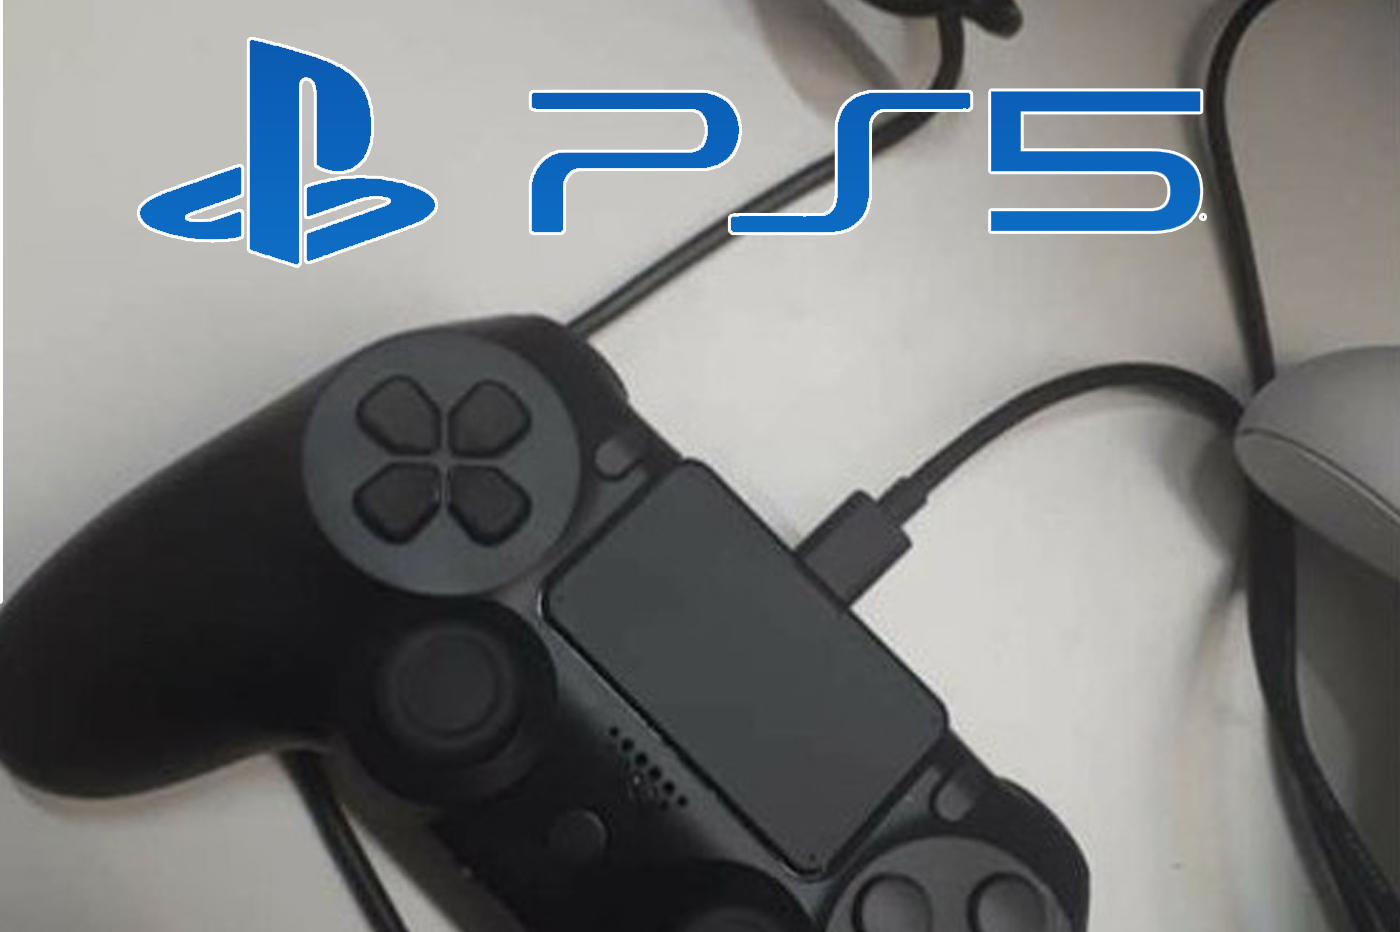 Manette PS5 Leak